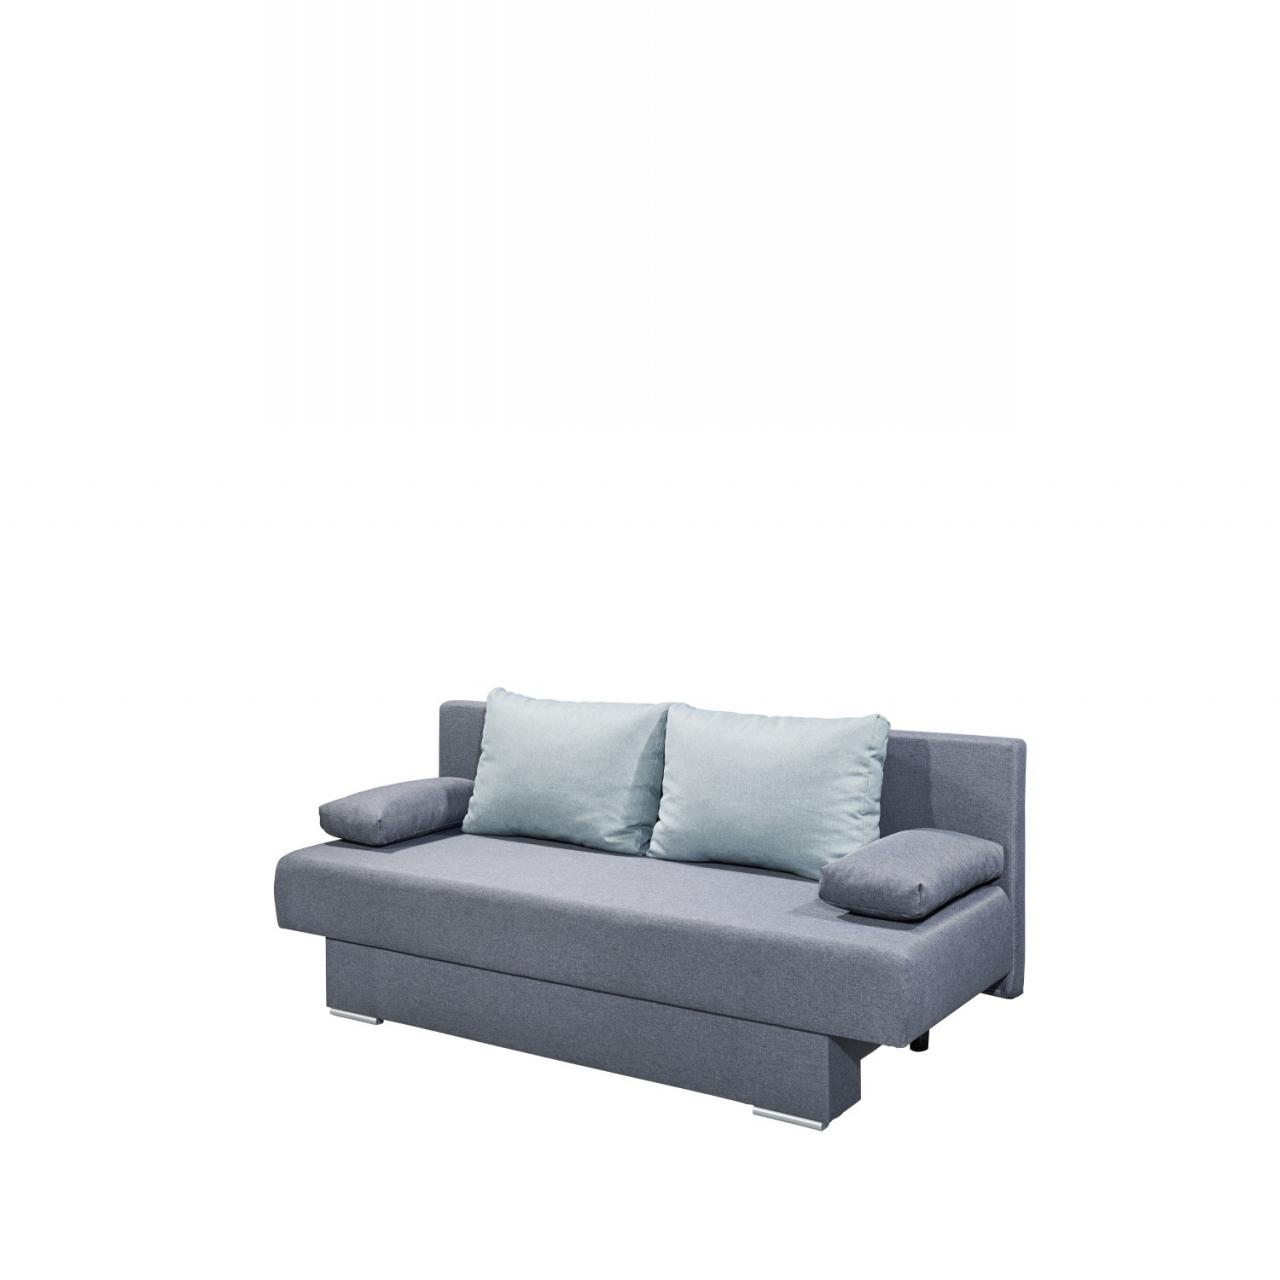 Schlafsofa Melanie Anthrazit Mint inkl. Kissen Couch Funktionssofa Sofa